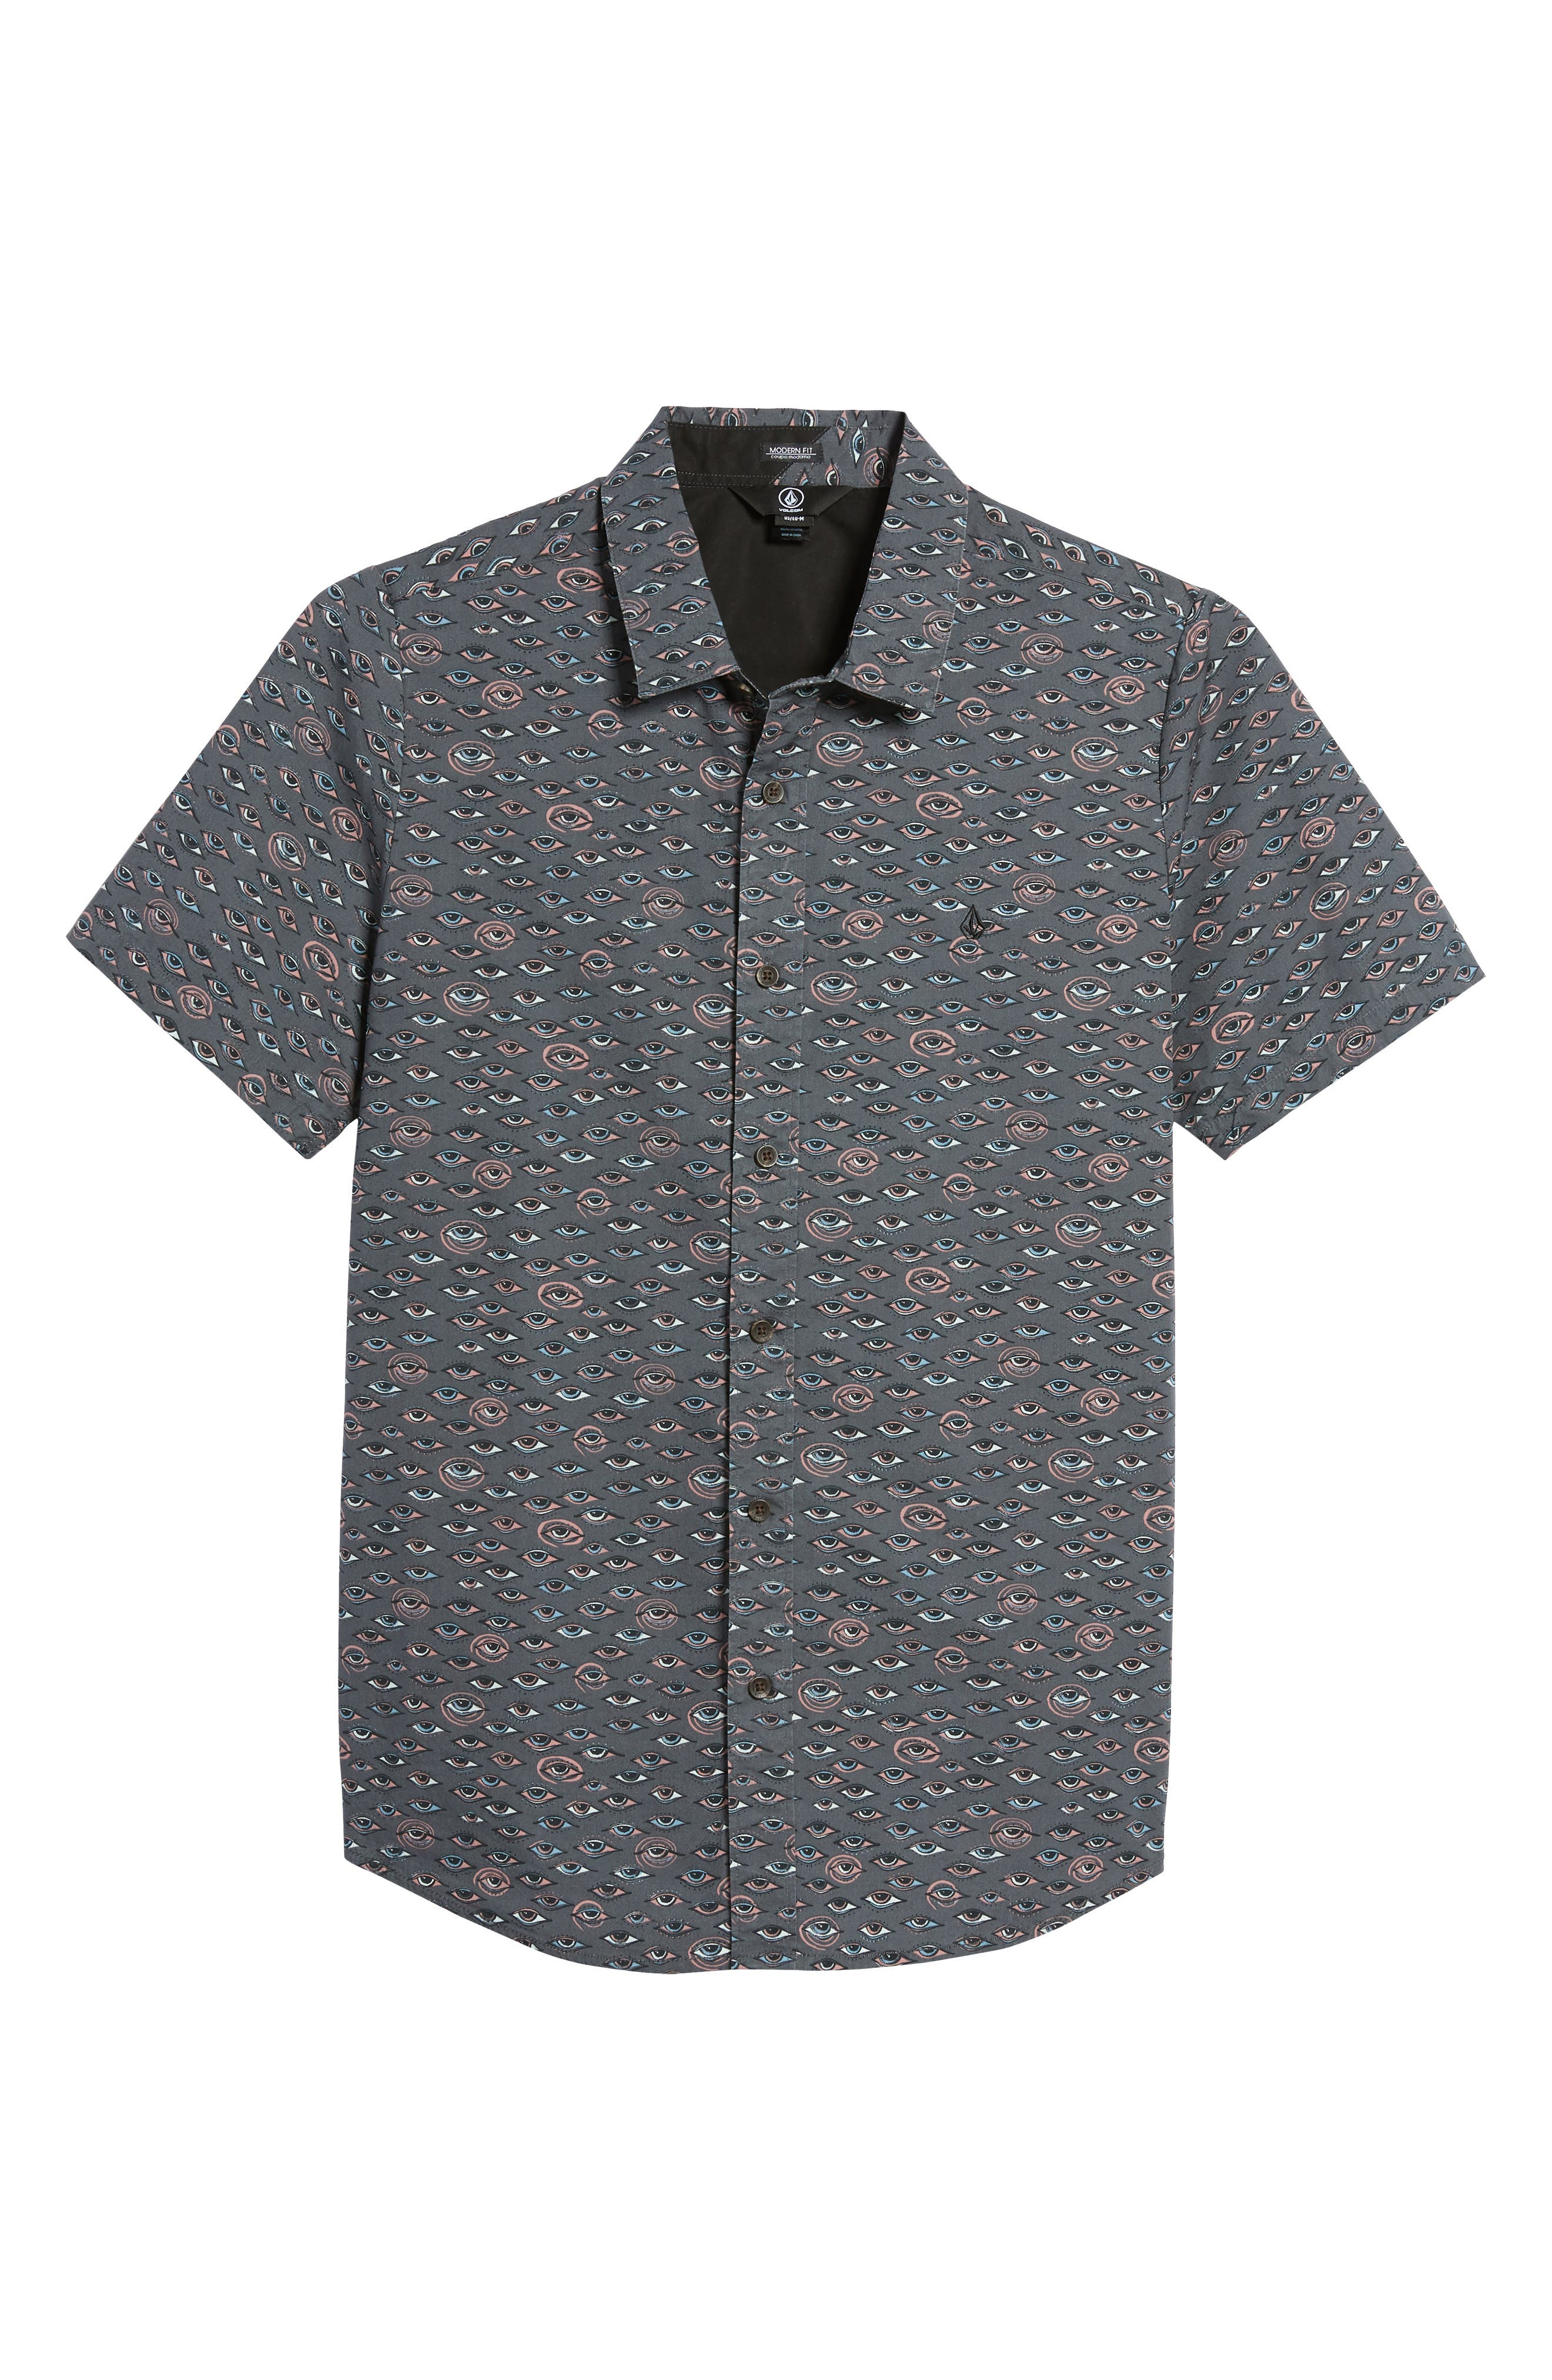 Burch Woven Shirt,                             Alternate thumbnail 6, color,                             020